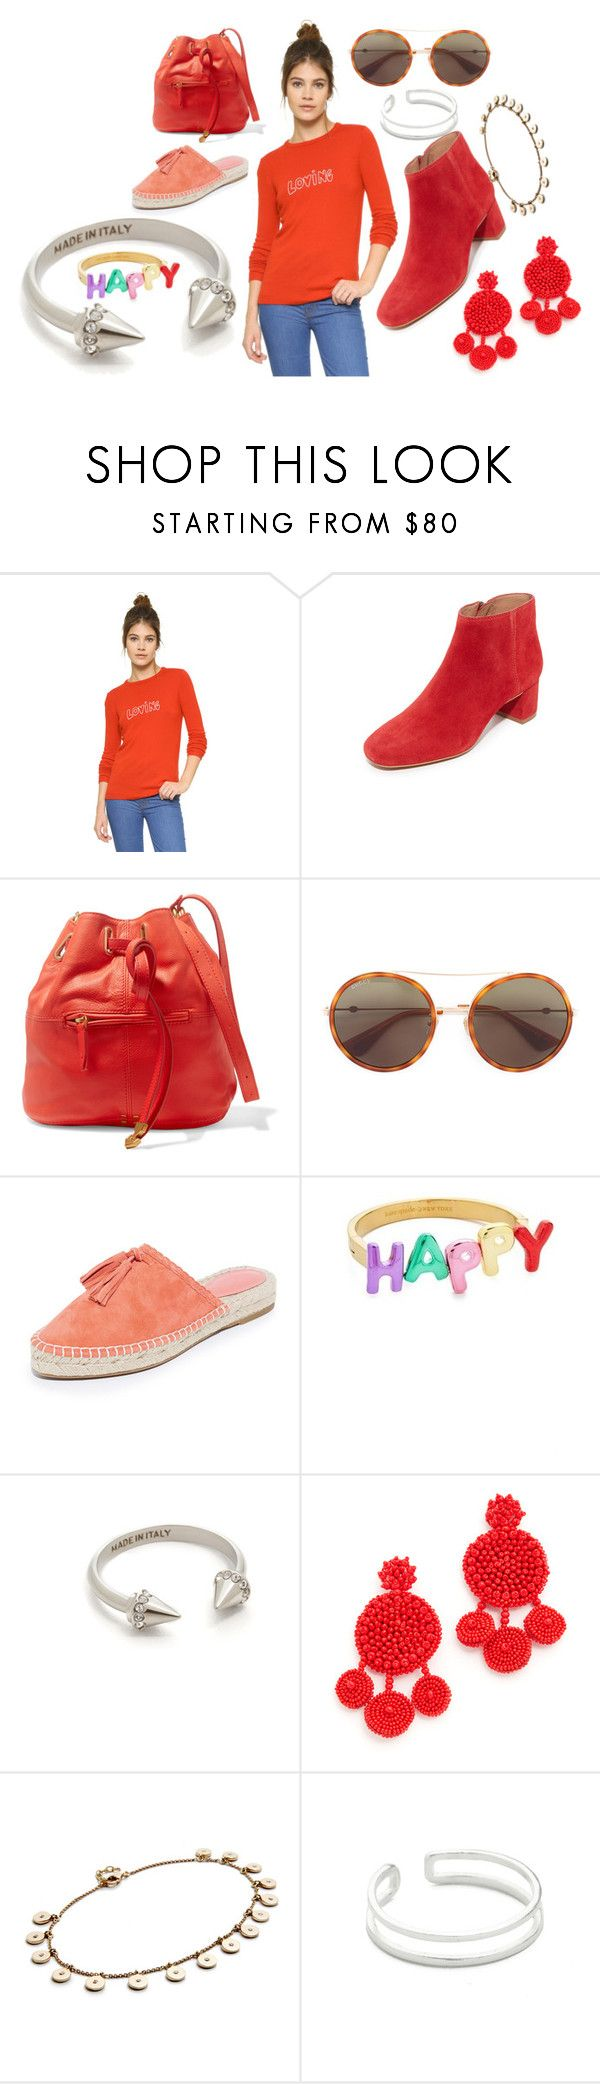 """""""Thatschic"""" by racheal-taylor ❤ liked on Polyvore featuring Bella Freud, Madewell, Jérôme Dreyfuss, Gucci, Joie, Kate Spade, Vita Fede, Mochi, Jacquie Aiche and Maya Magal"""